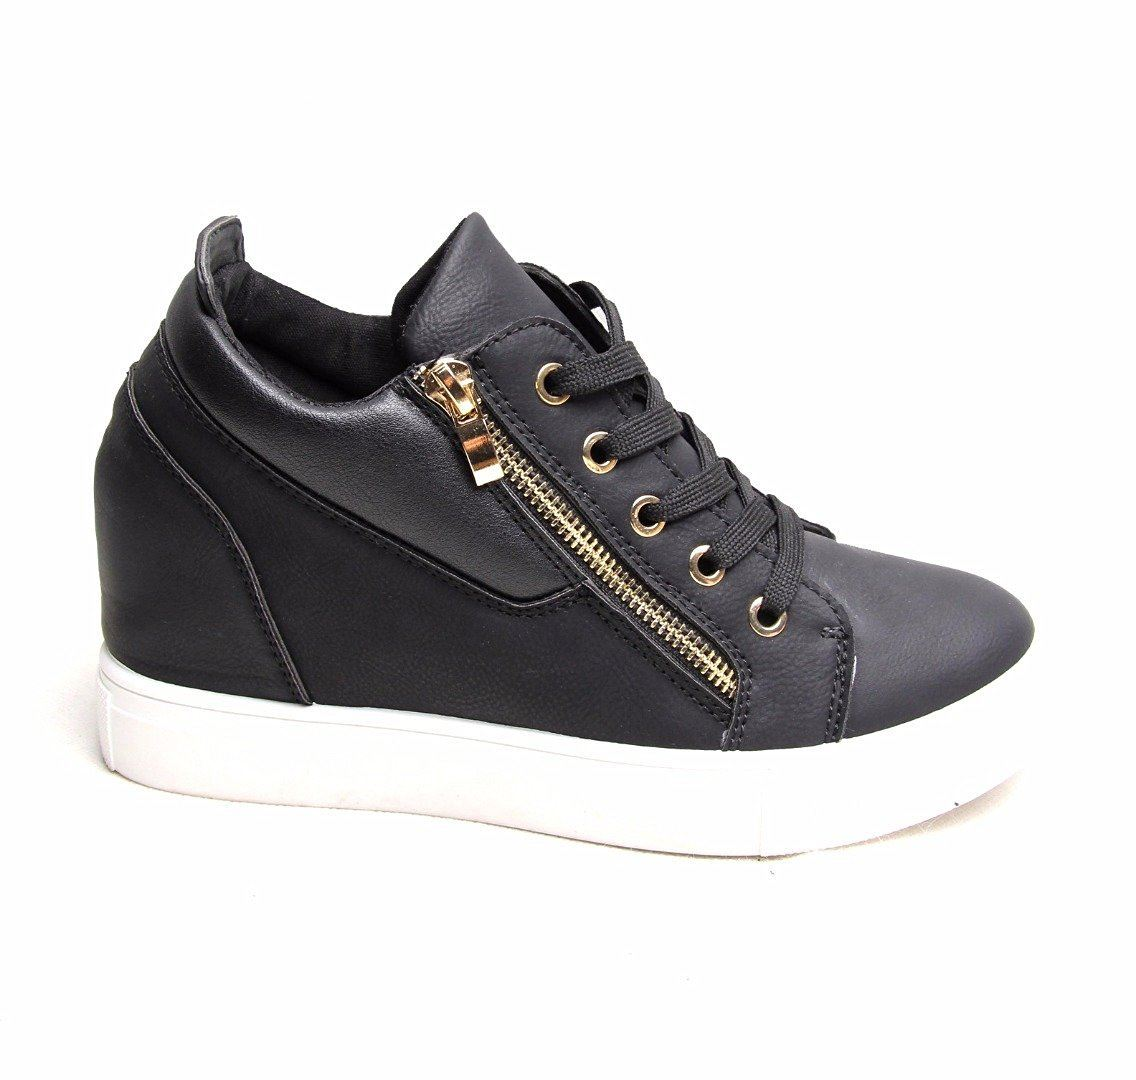 Womens Wedge Sneakers Shoes